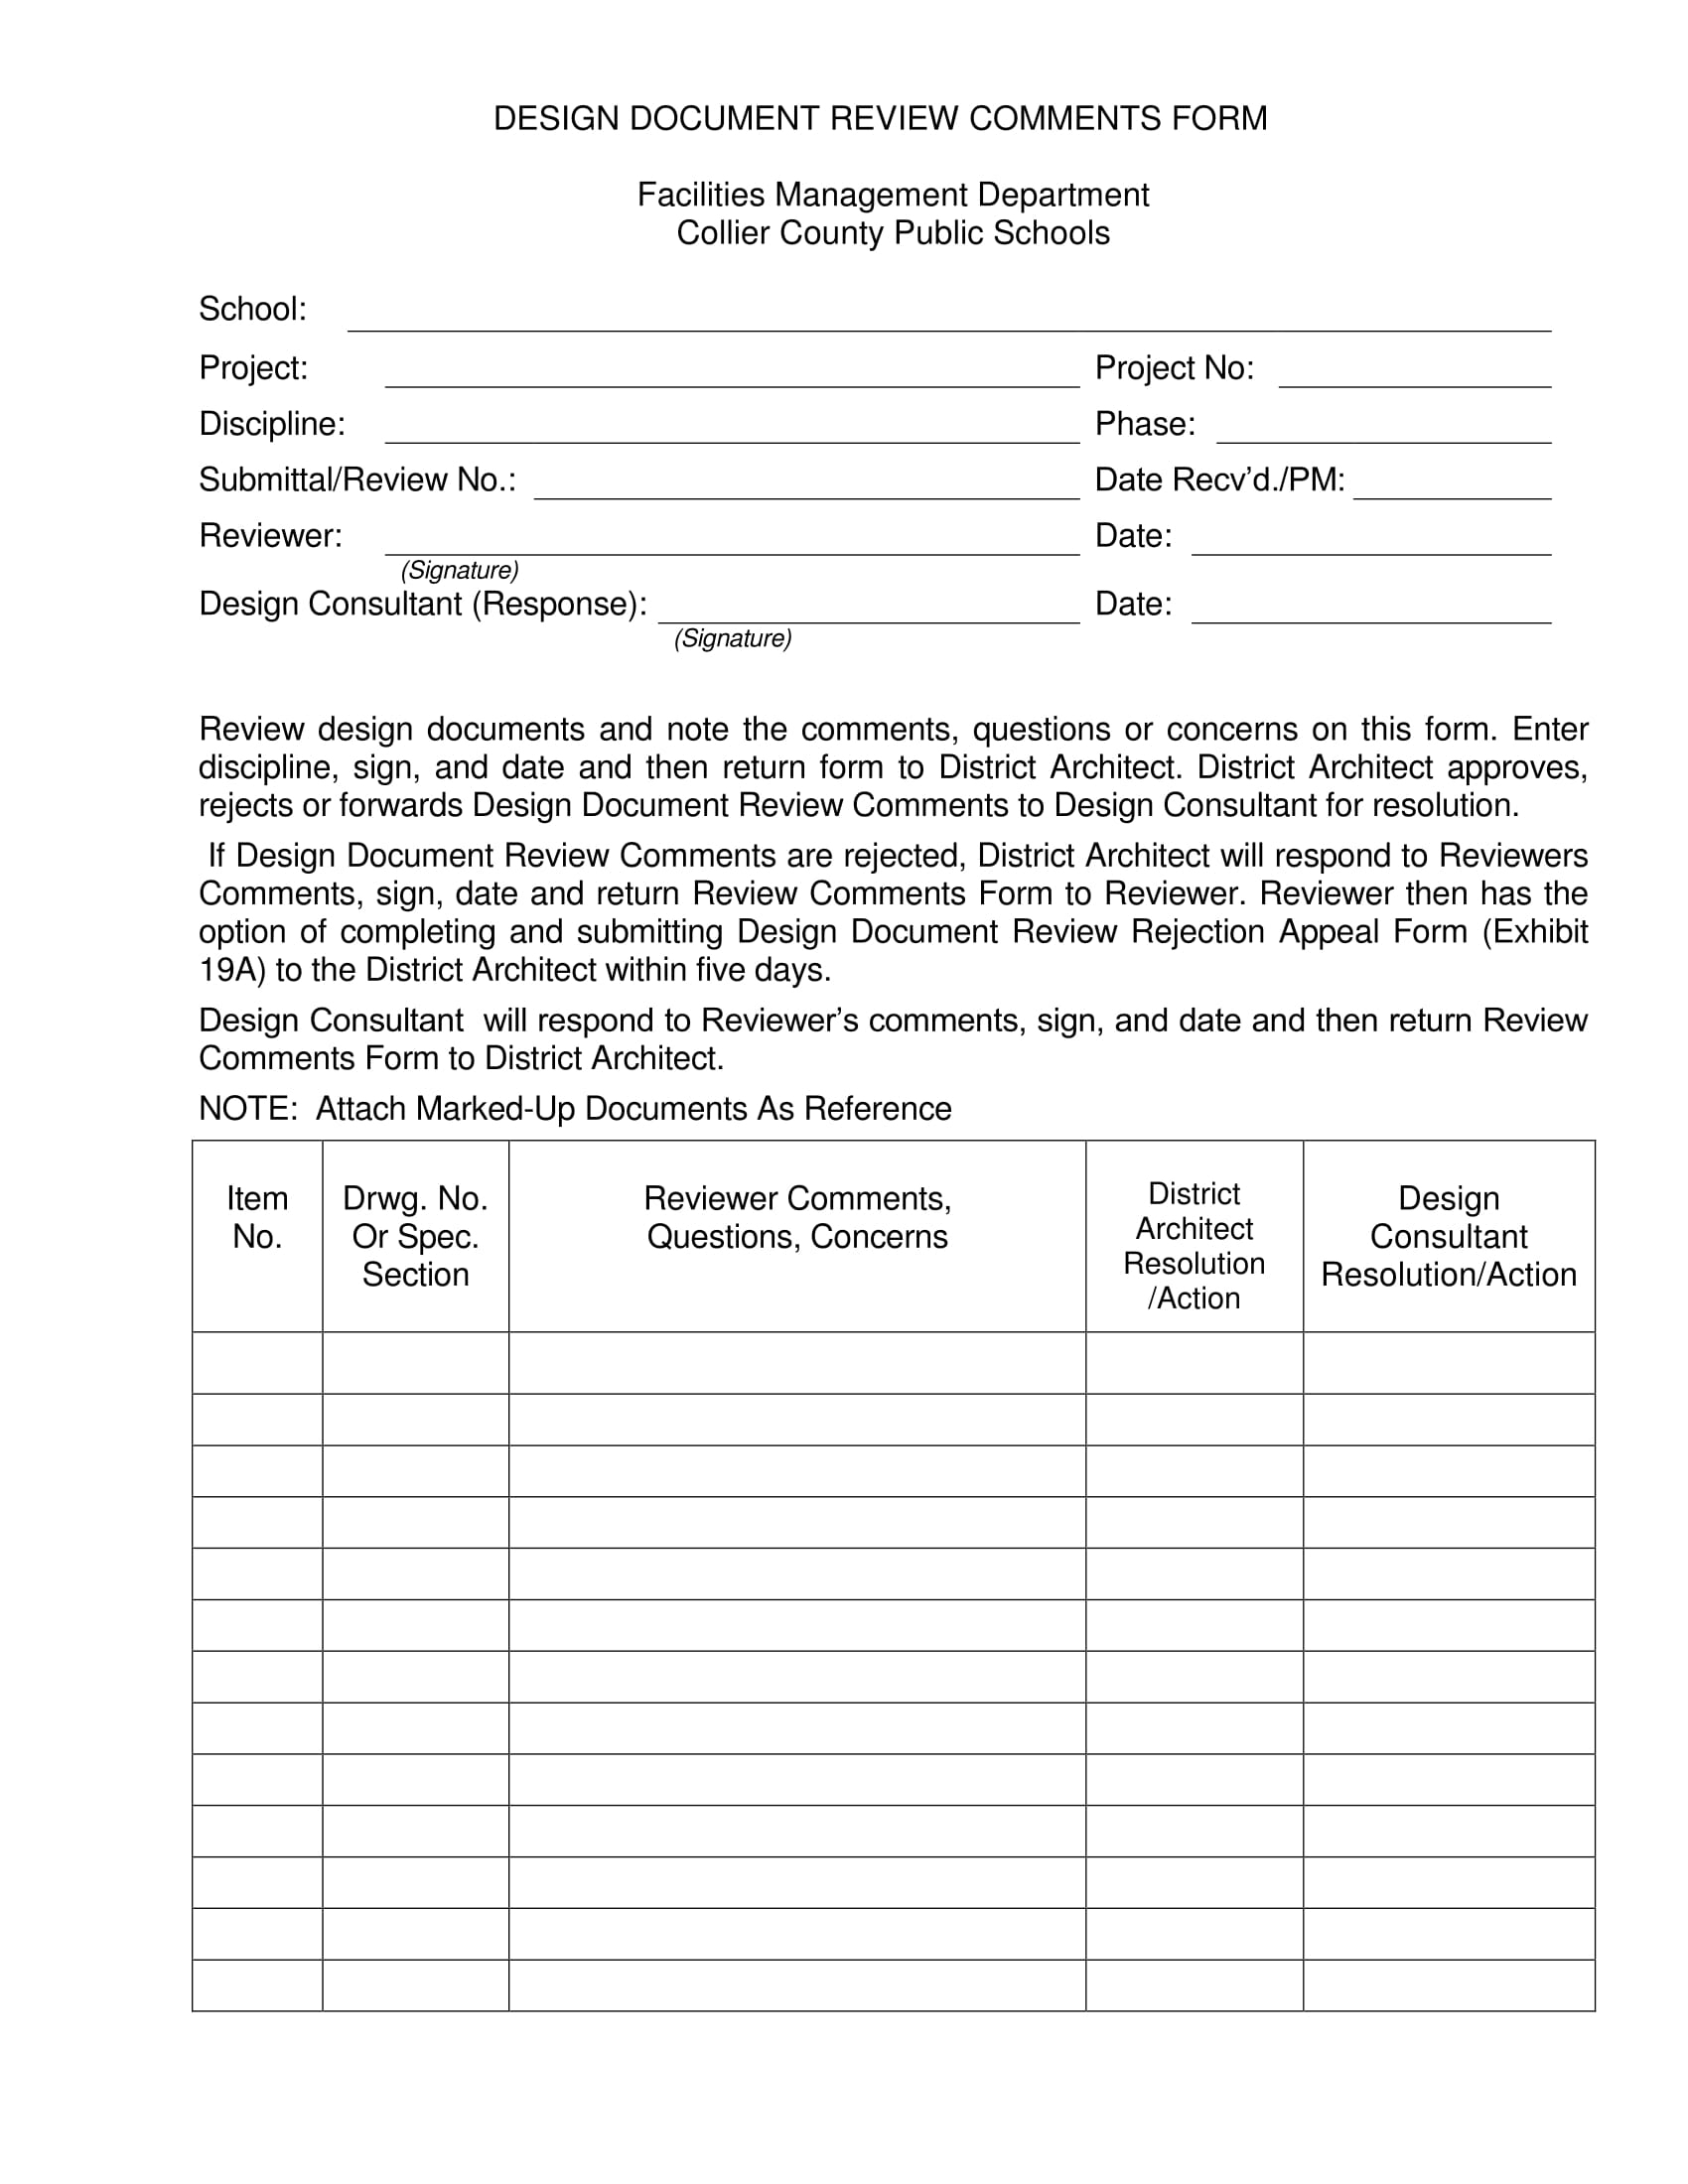 design document review comments form 1